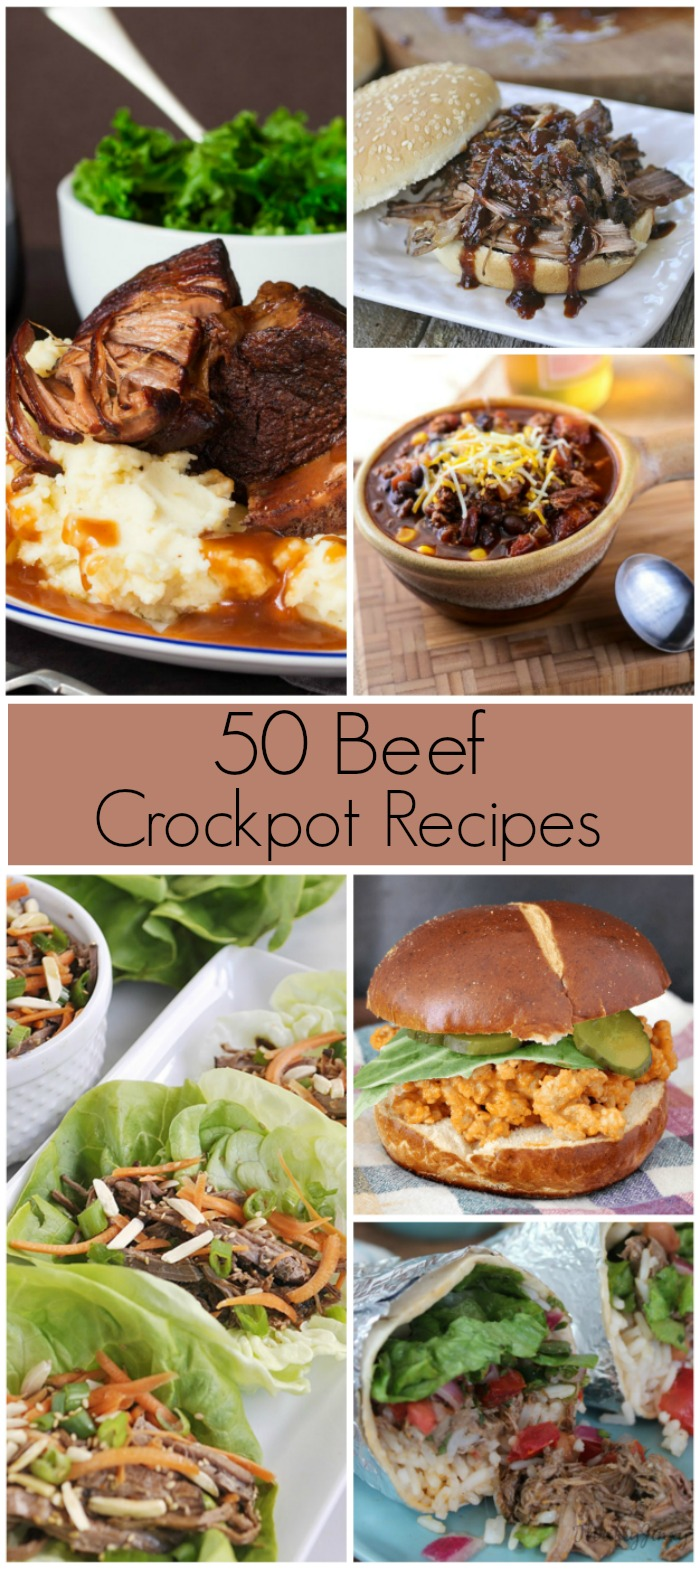 50 Slow Cooker Recipes - Perfect for your crockpot!